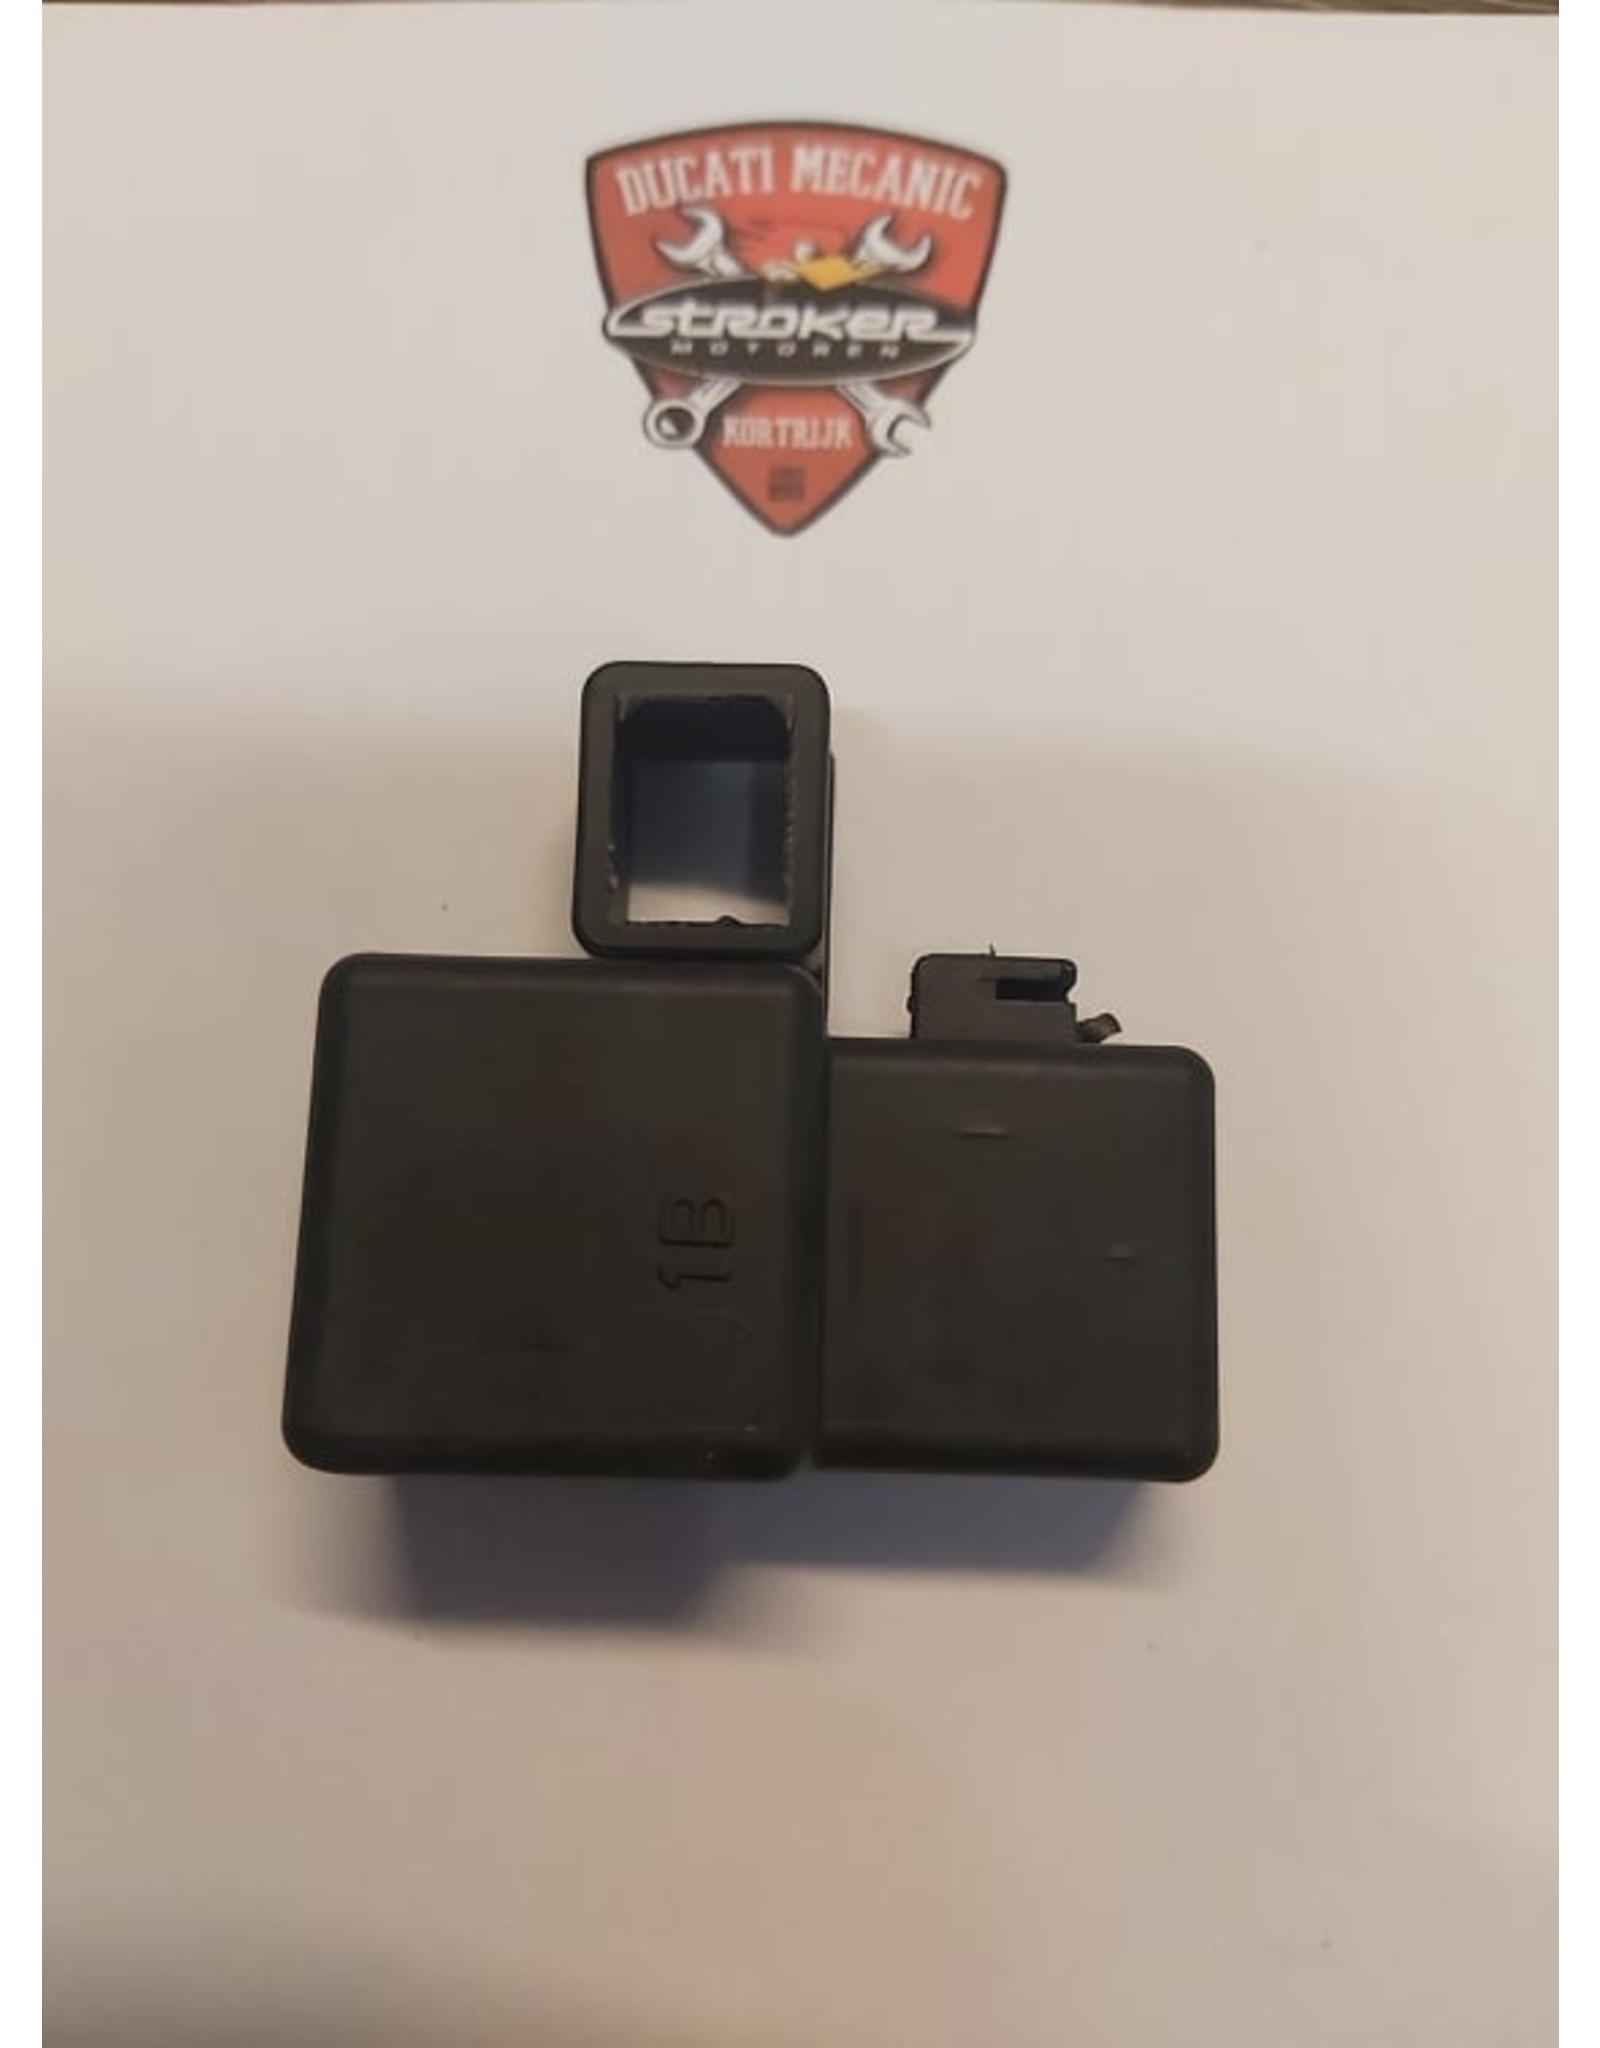 DUCATI Relay Support Holder